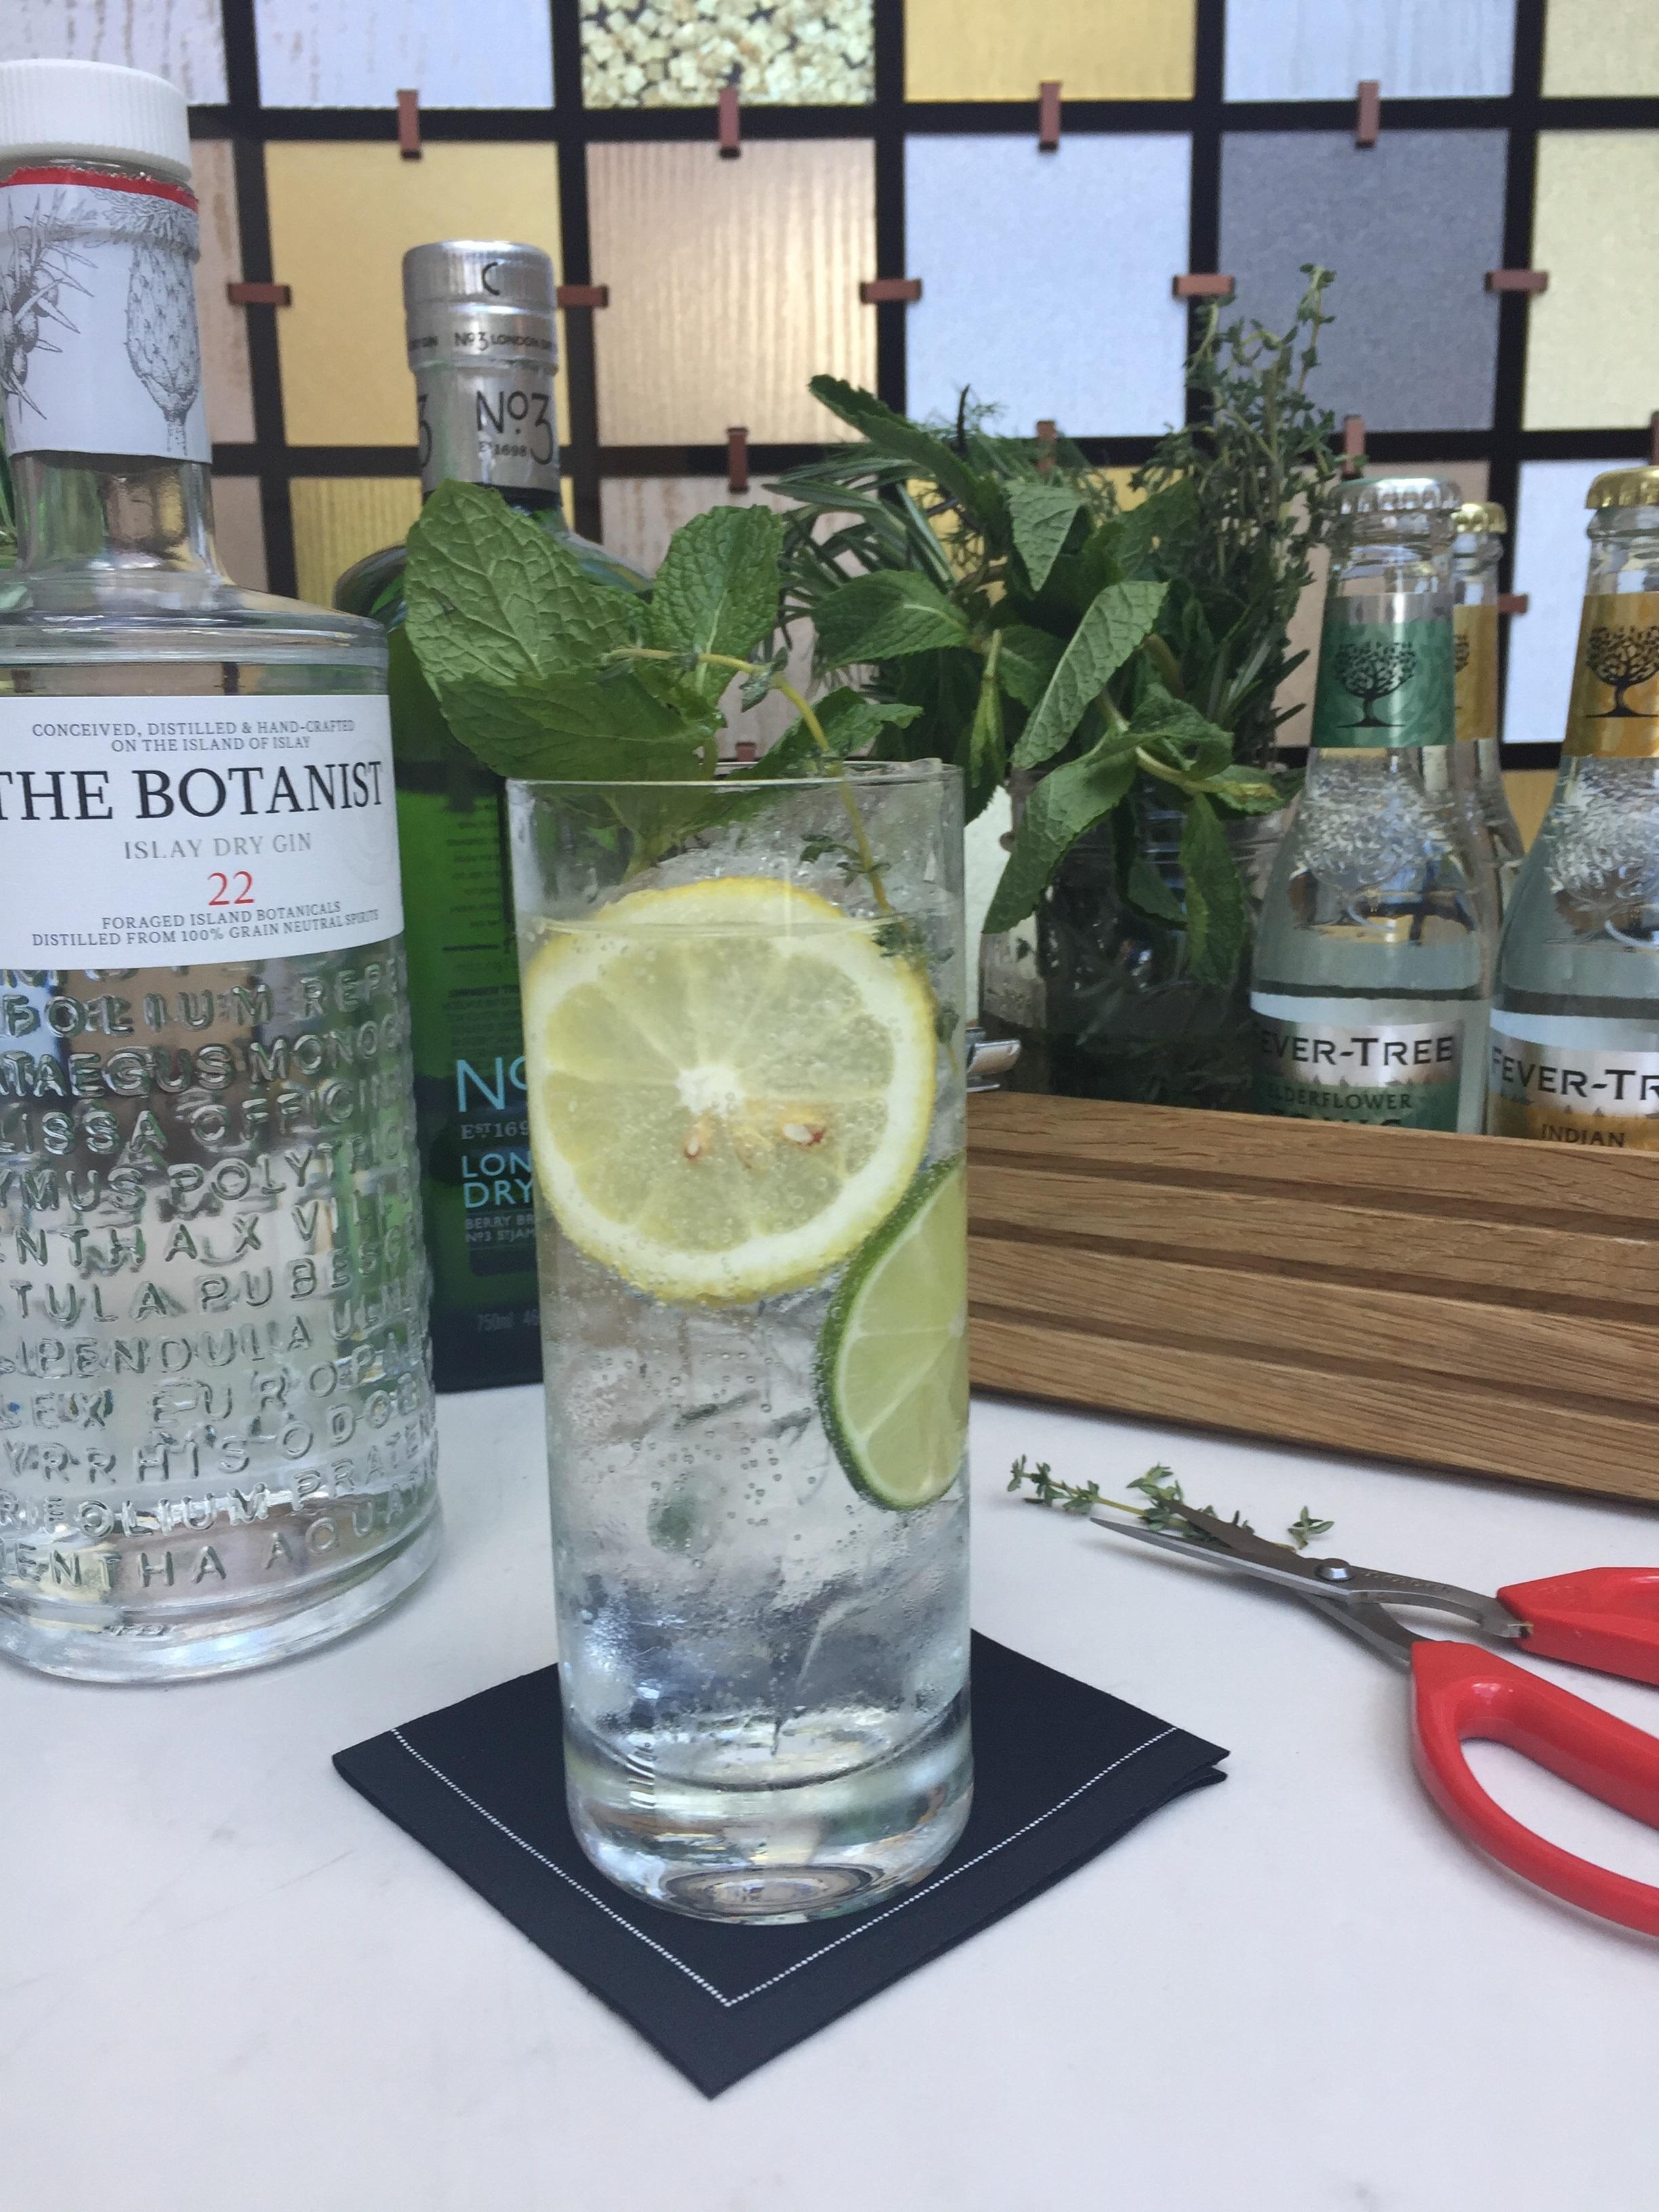 Juniper Restaurant{ } offers a DIY G&T. (Image: Courtesy Juniper)